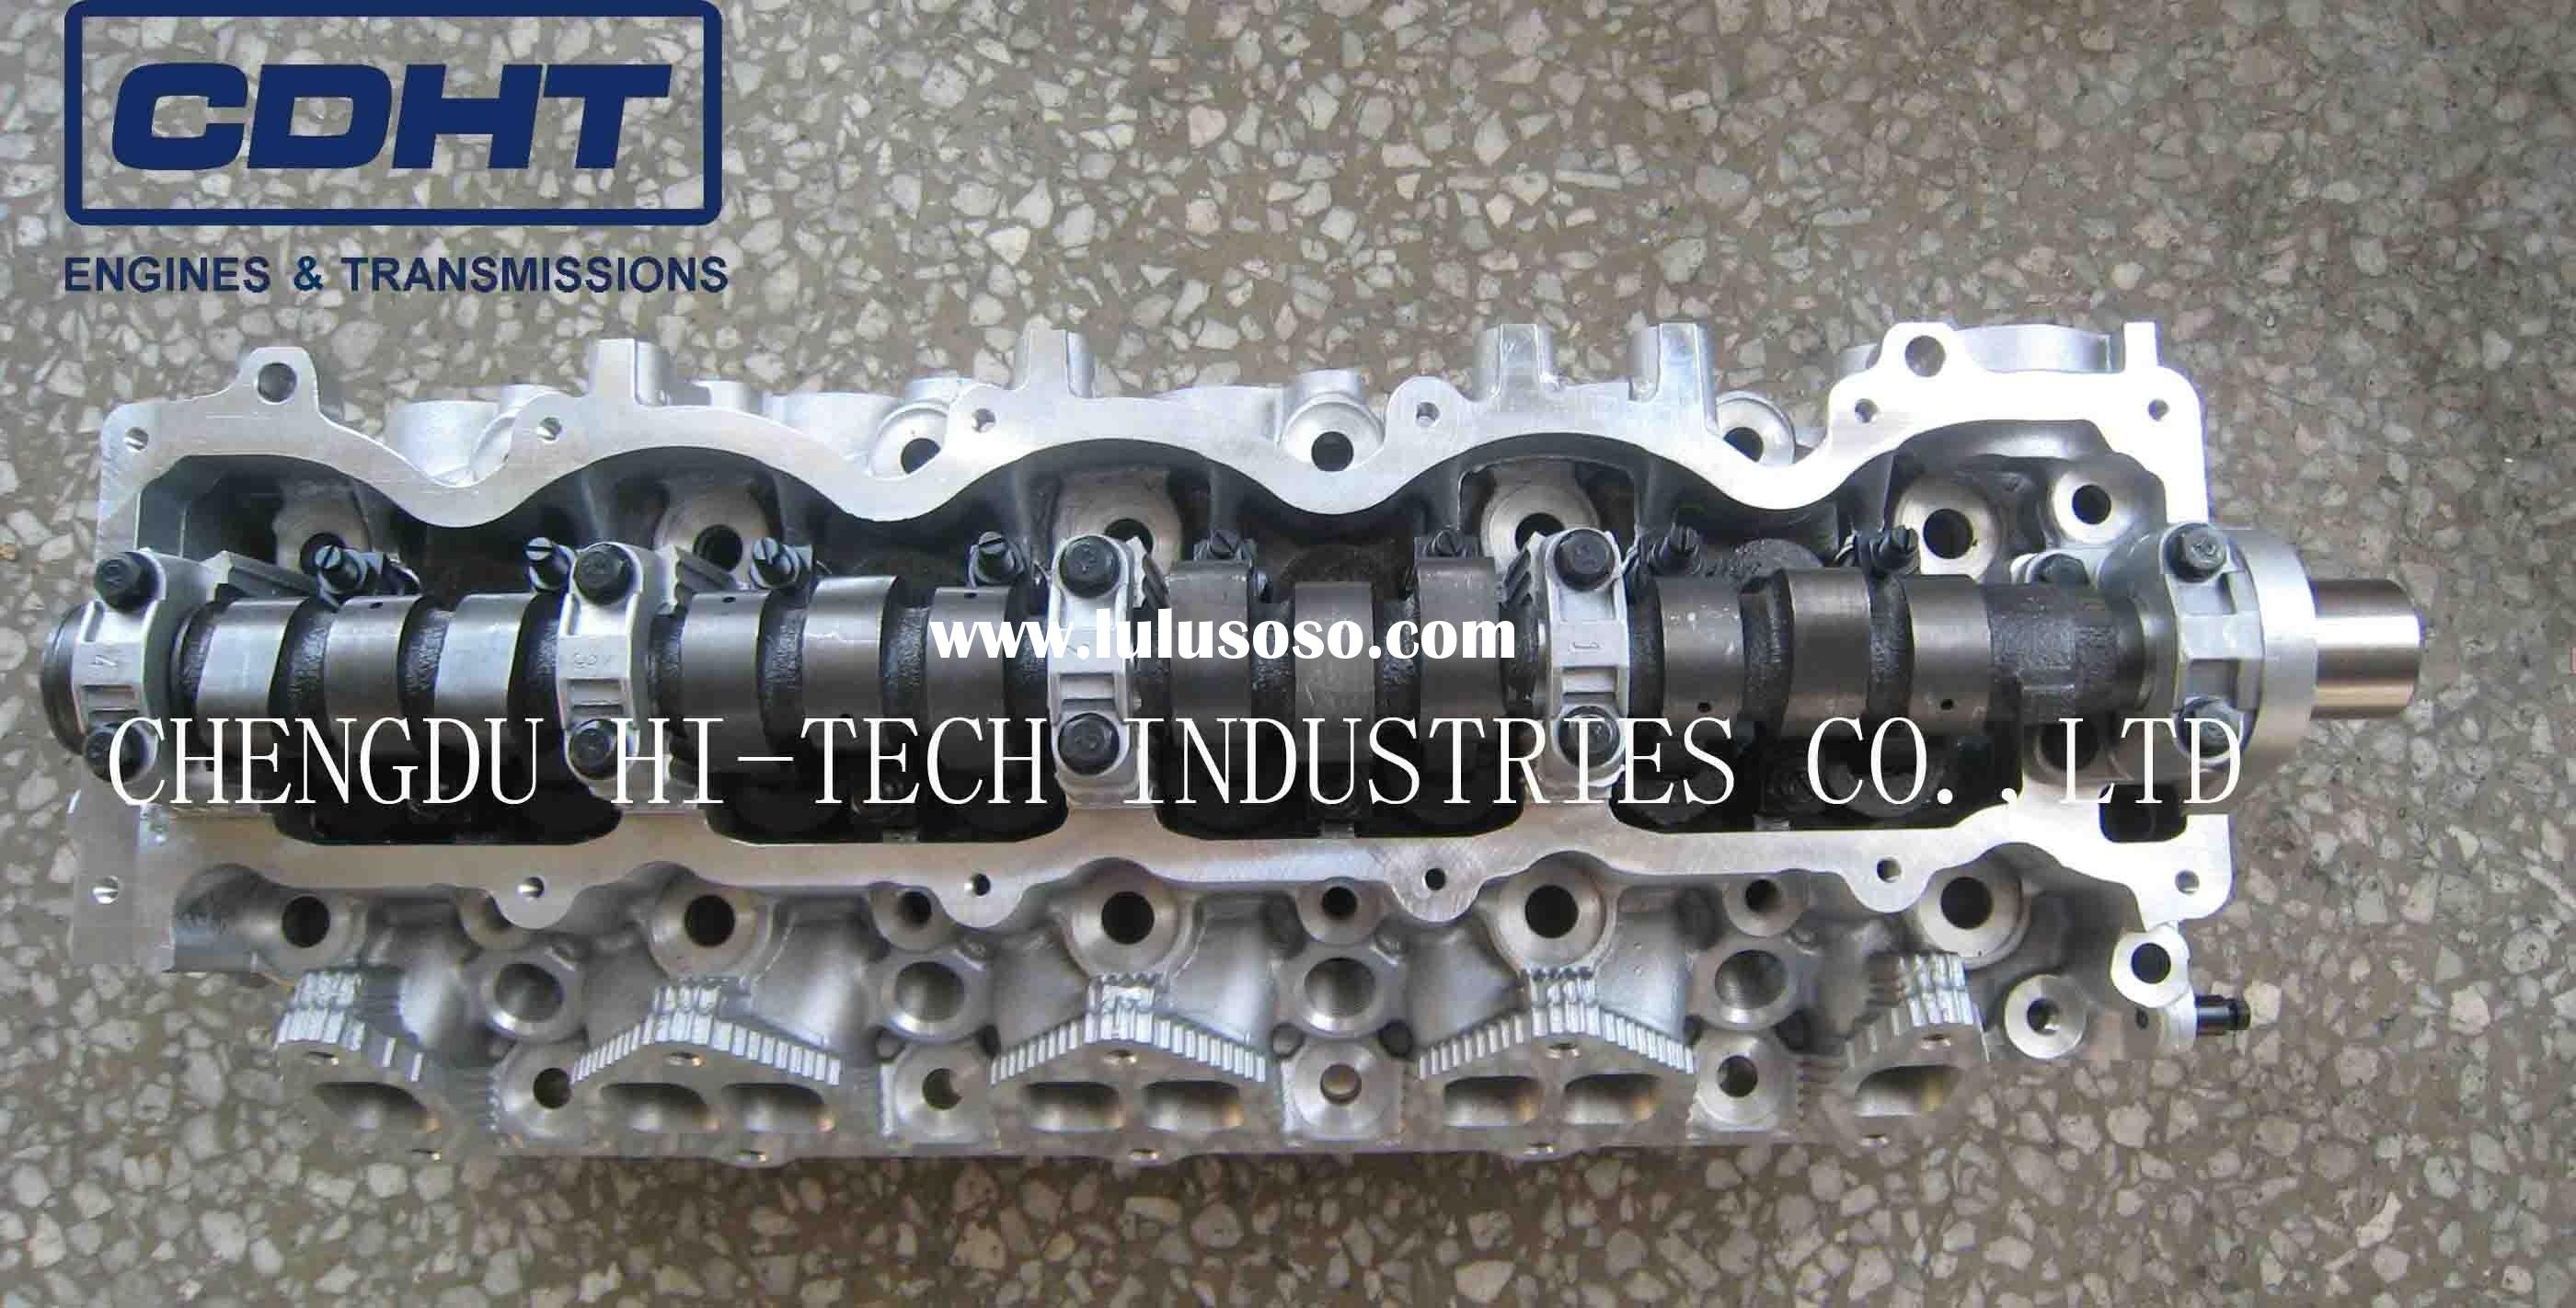 CYLINDER HEAD FOR MAZDA/FORD WL/WLT CYLINDER HEAD, 2.5L DIESEL, WITH CAMSHAFT AND VALVES.